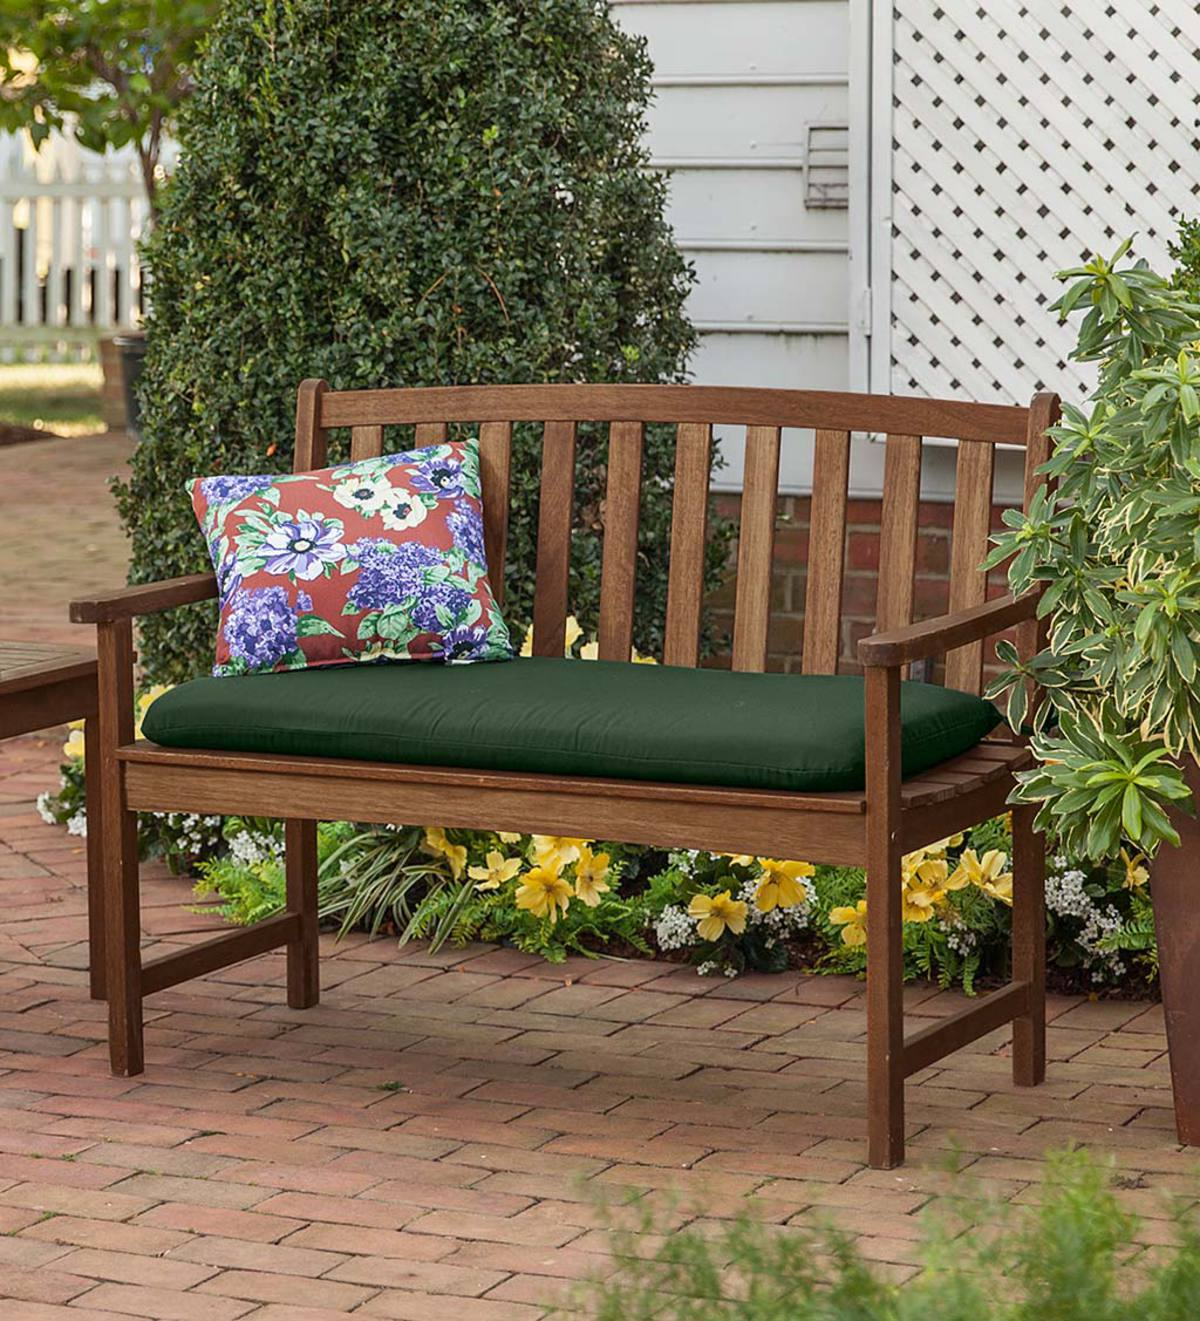 Plow And Hearth Furniture: Eucalyptus Wood Bench, Lancaster Outdoor Furniture